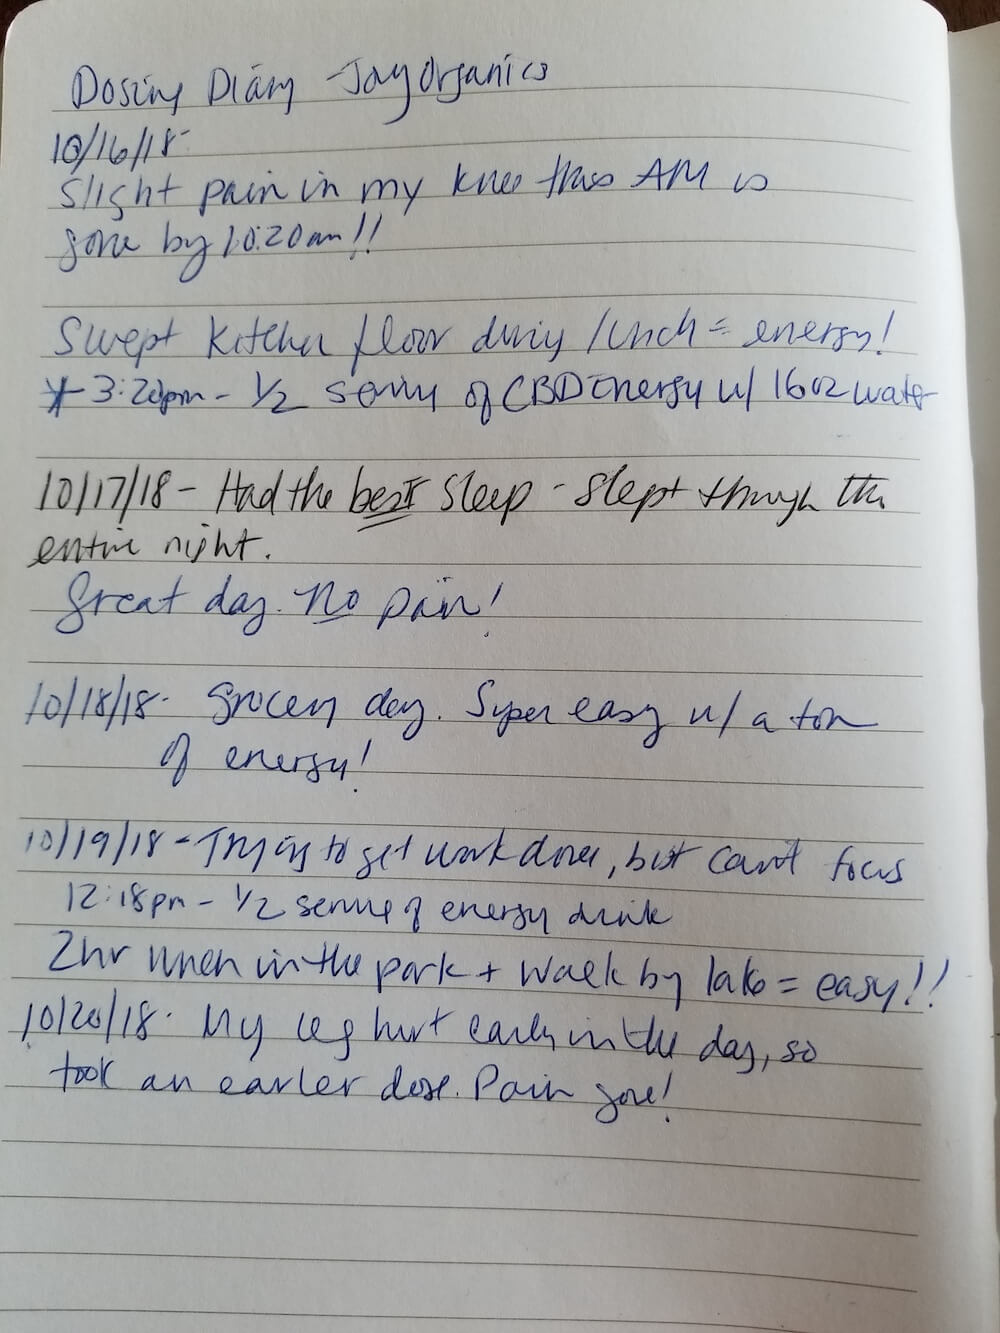 Journal Entries when dosing with Joy Organics CBD Oil Tincture